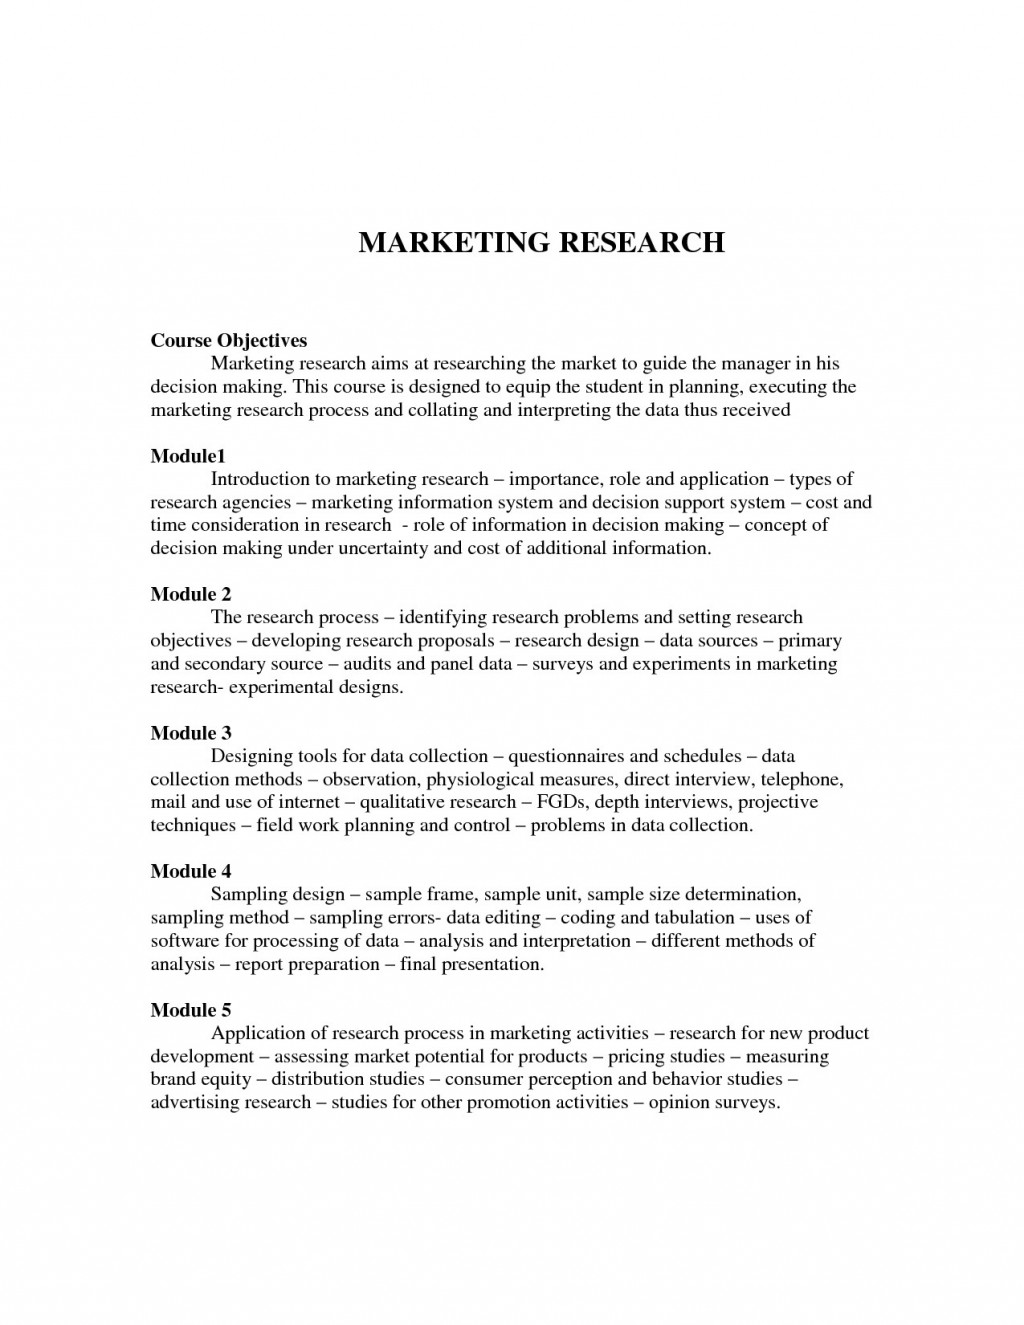 003 Marketing Researchr Introduction Sample Best Photos Of Market Proposal Template Pertaining To Design Presentation Techniques For And Project Proposals Rare Research Paper Large